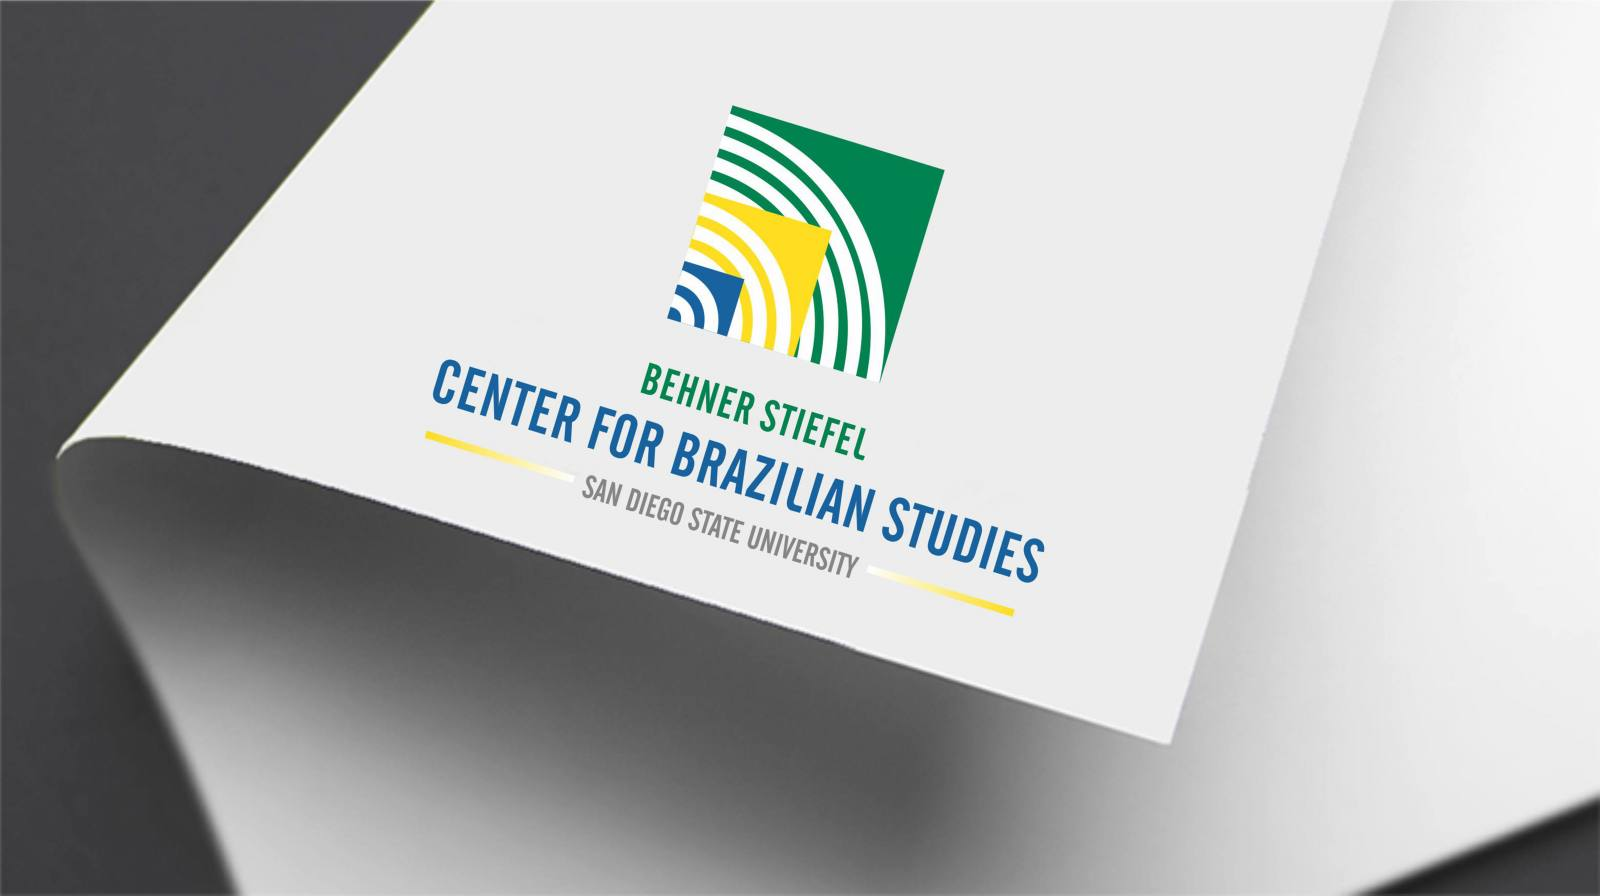 Marca internacional do Center for Brazilian Studies